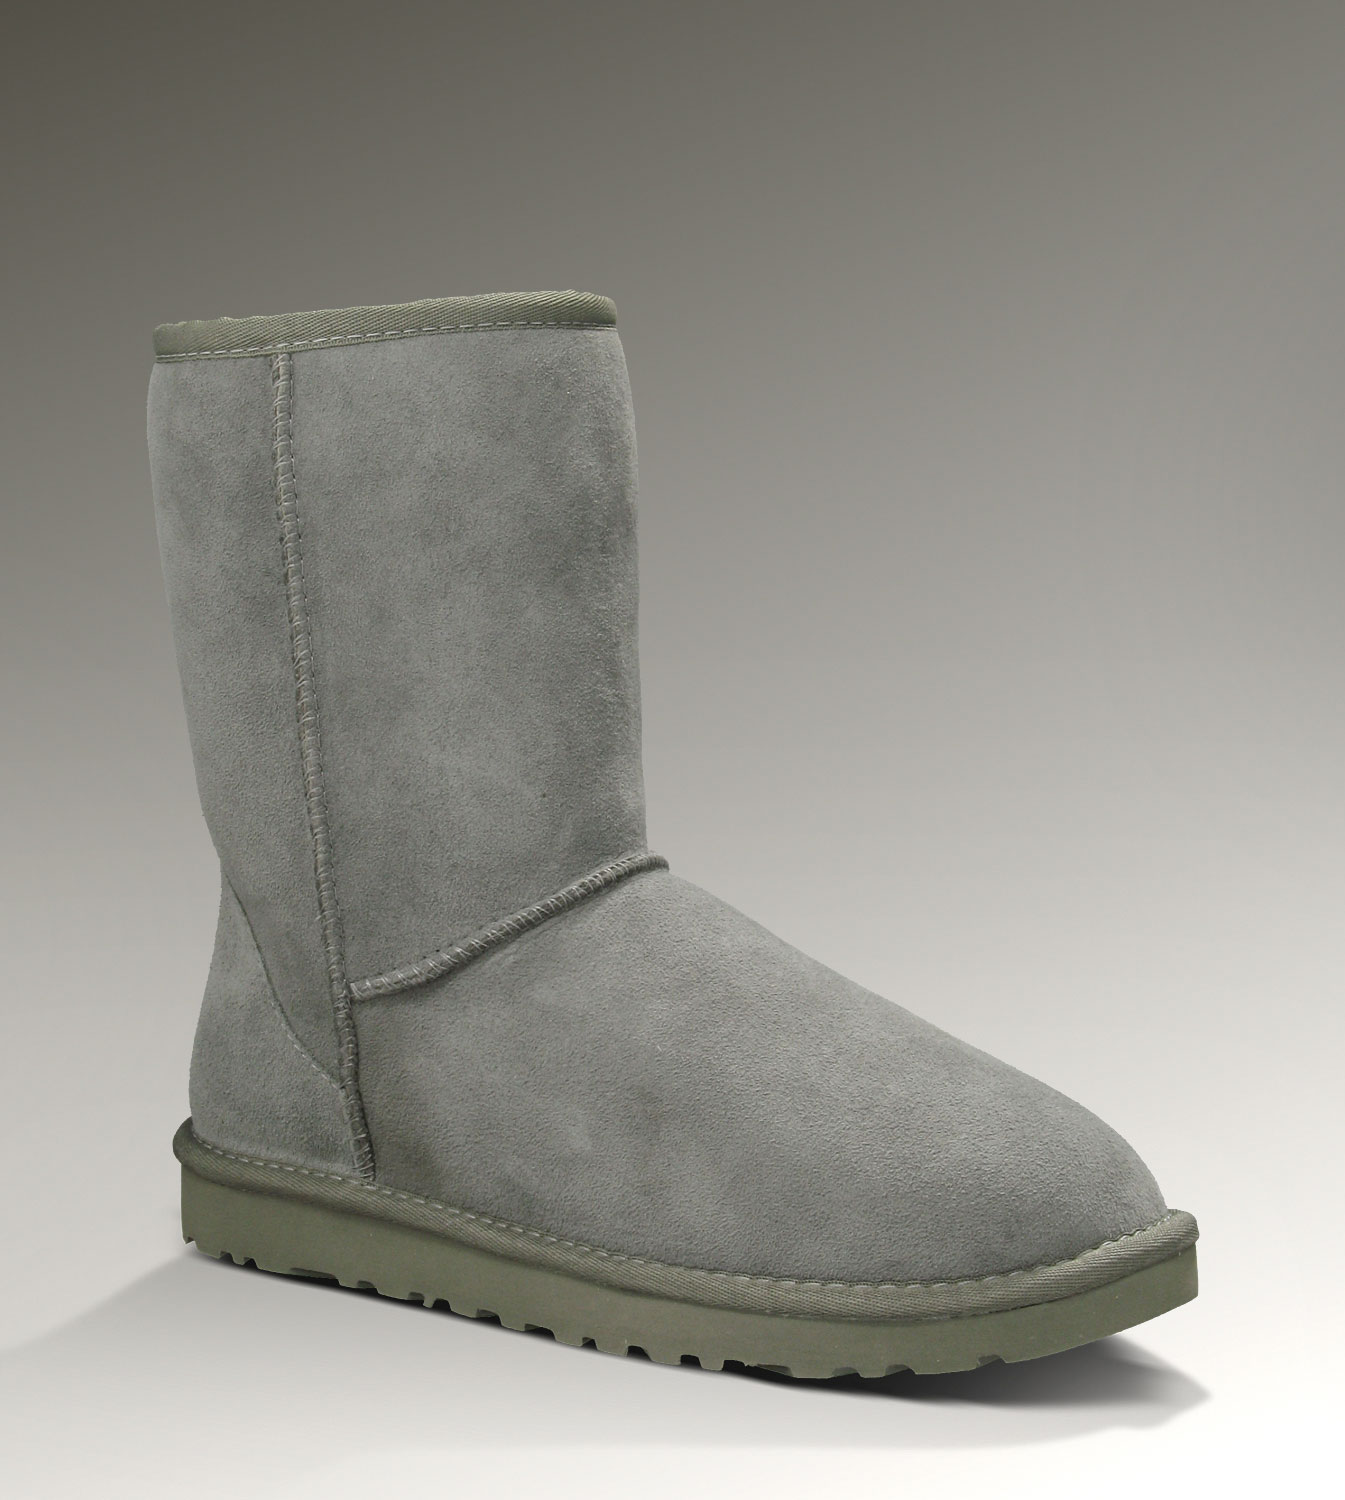 UGG Classic Short 5825 Grey Boots